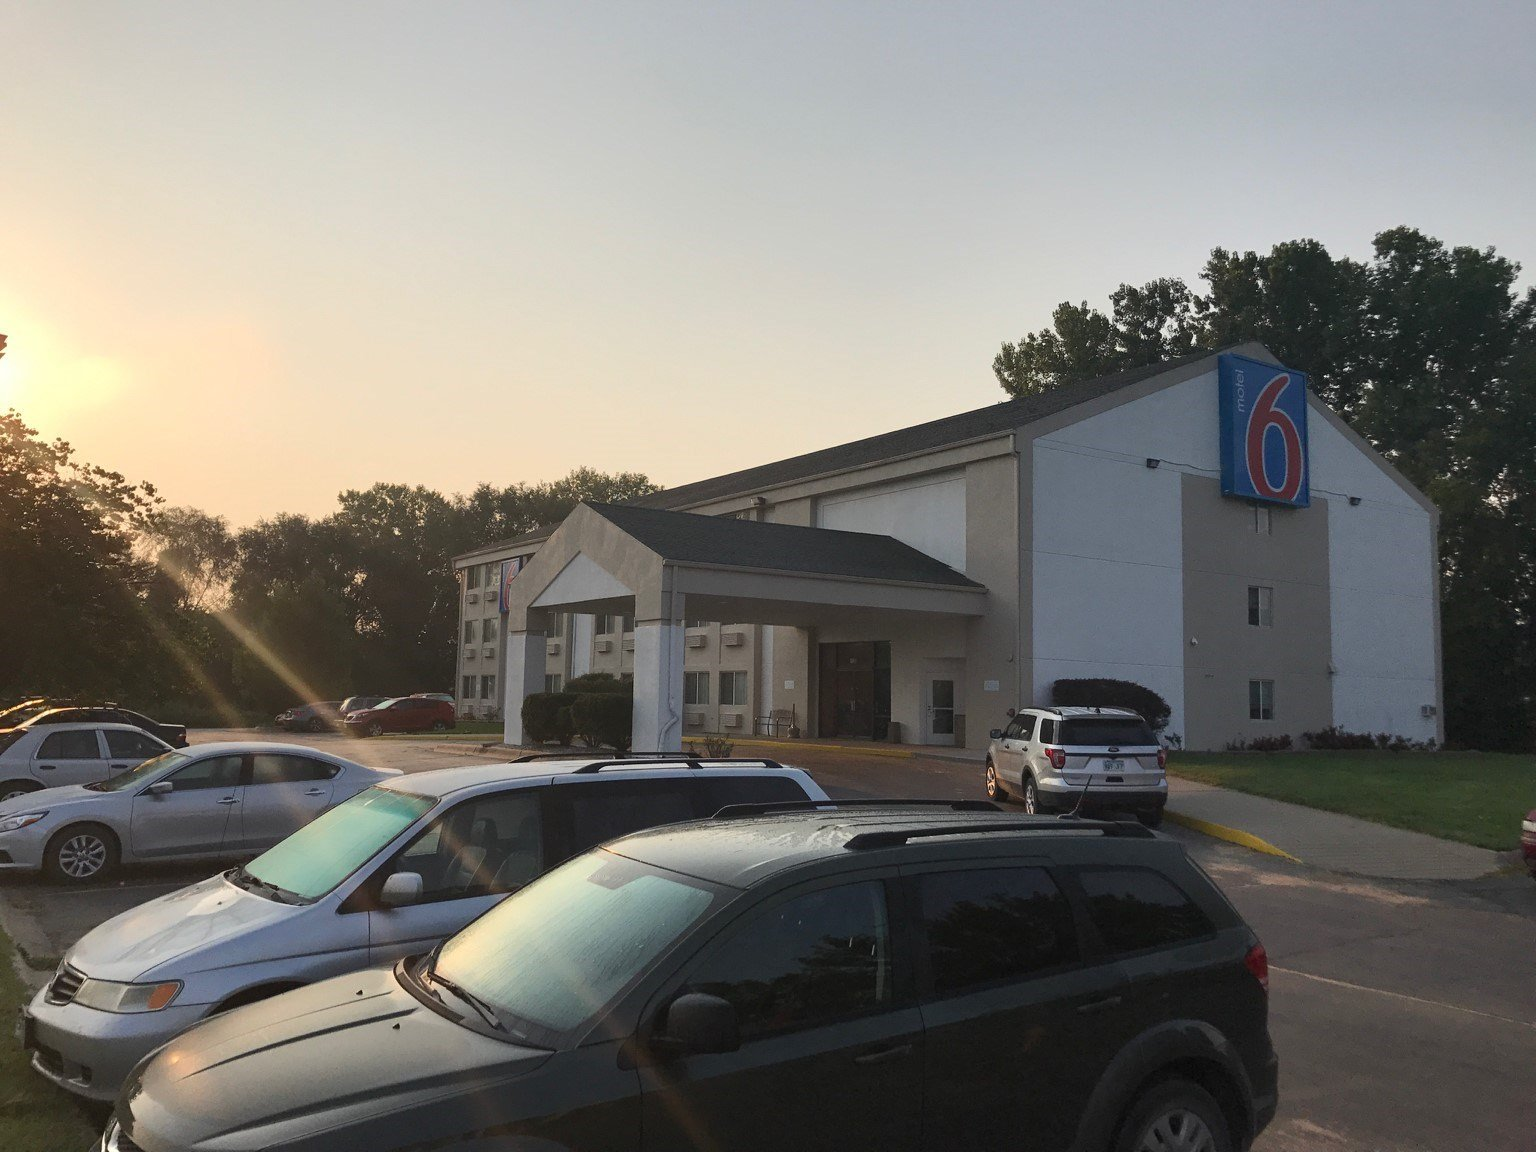 1 dead, 2 injured in Lawrence Motel 6 shooting